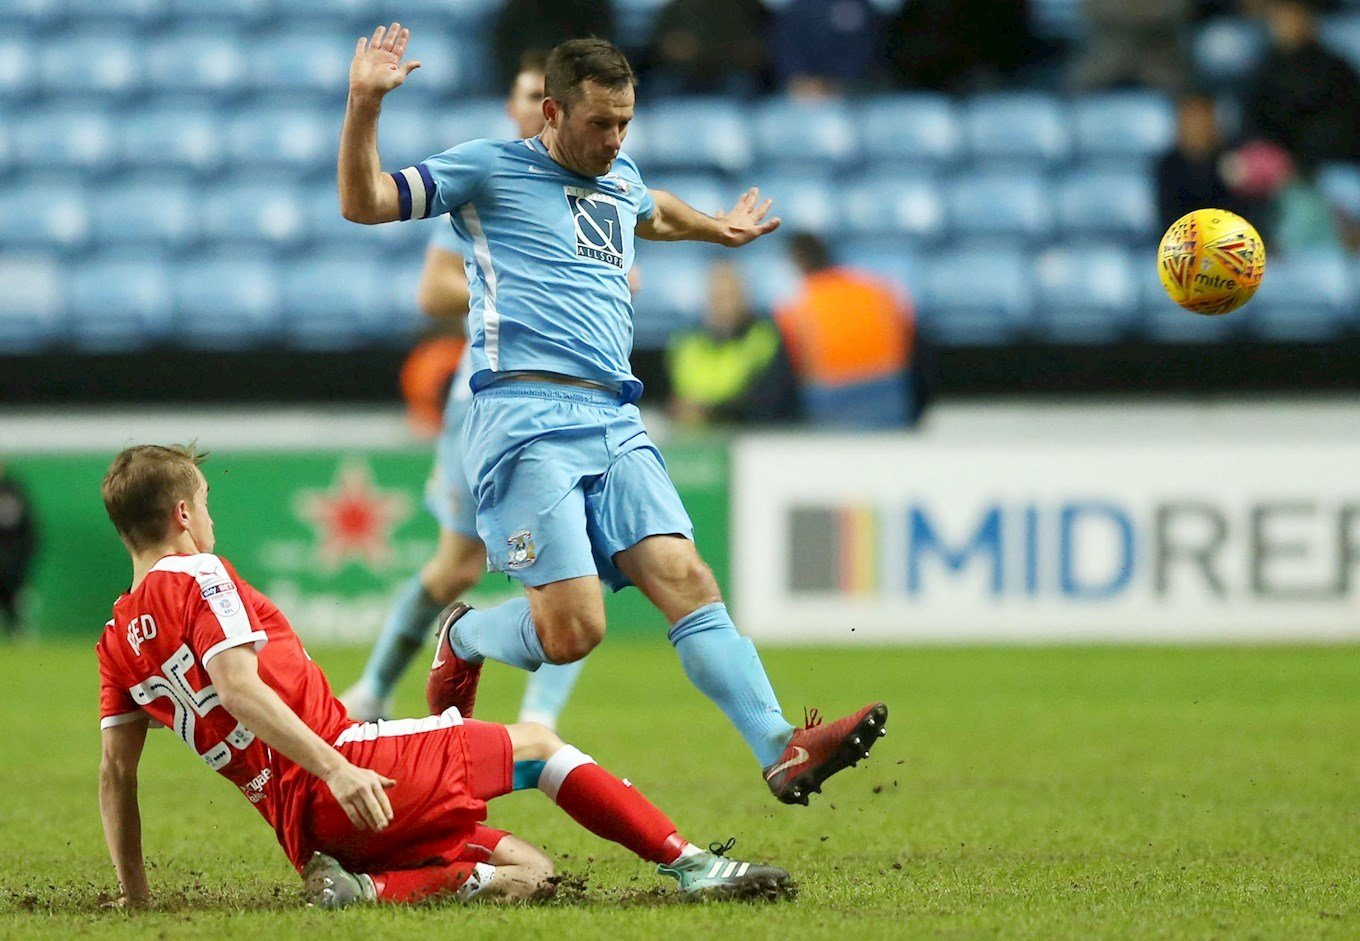 INTERVIEW: Michael Doyle Reflects On Victory Against Chesterfield